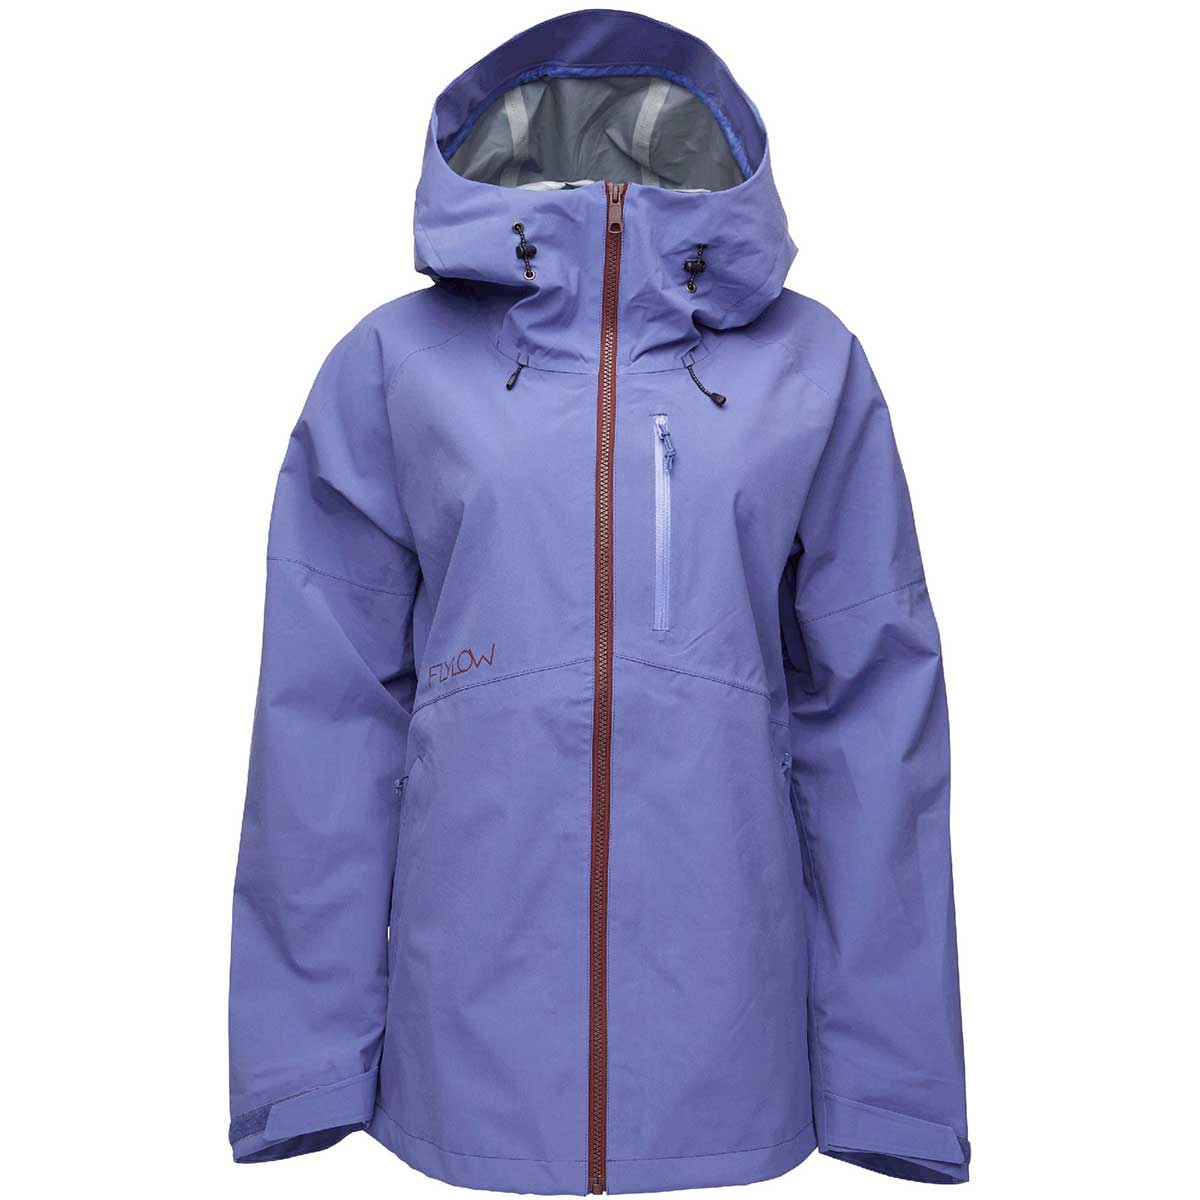 Flylow women's Puma Jacket in Lupine front view